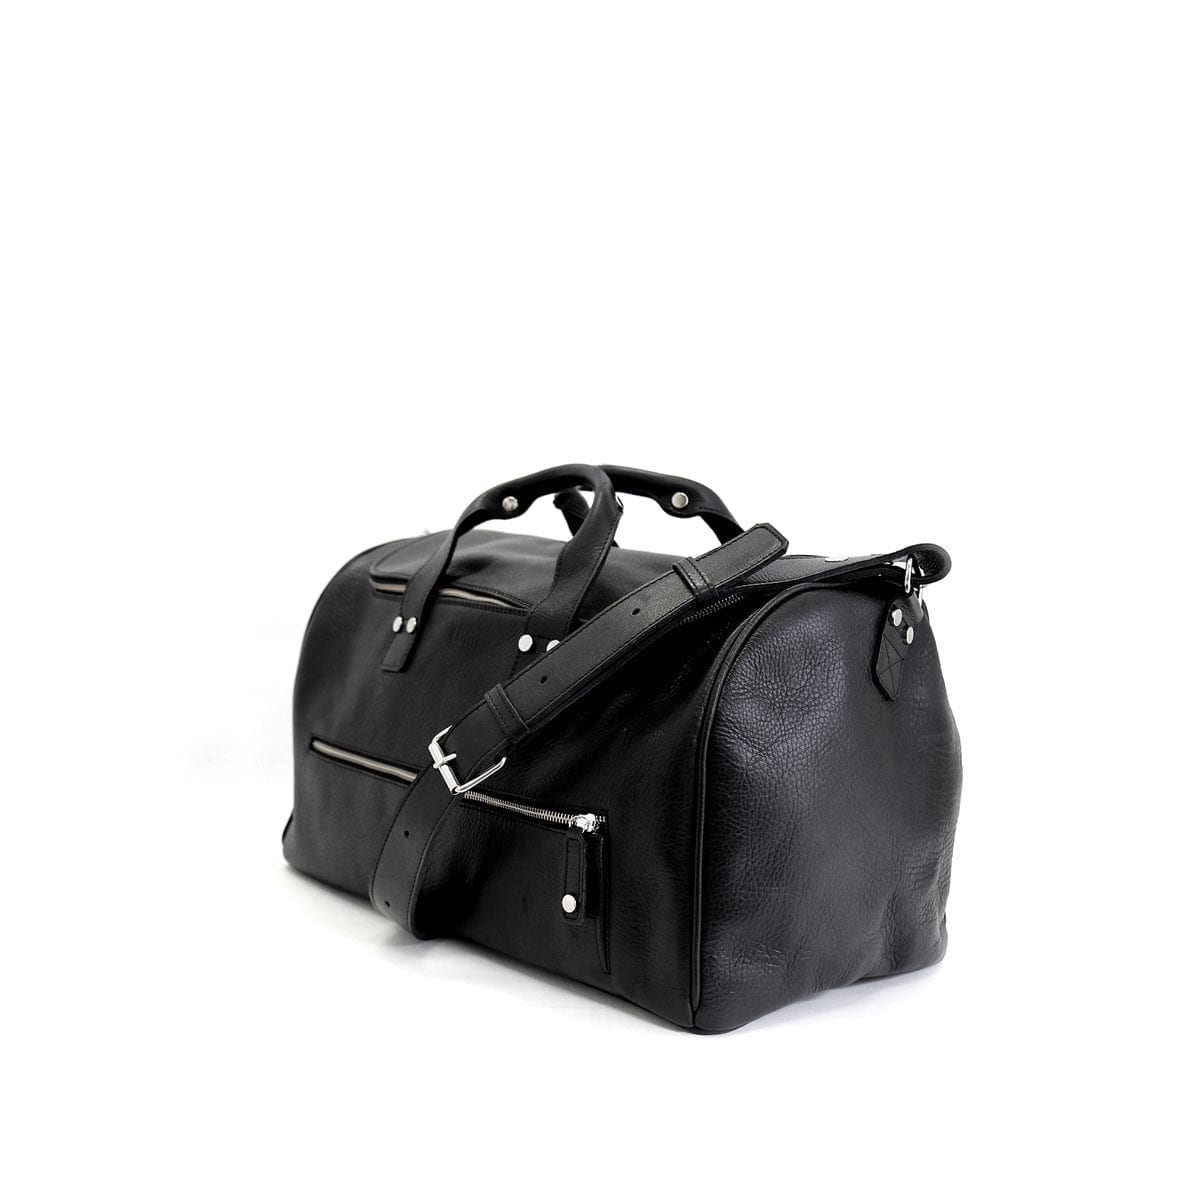 LUMI Kari Gym Bag, in black. This roomy gym bag to fits all your workout essentials